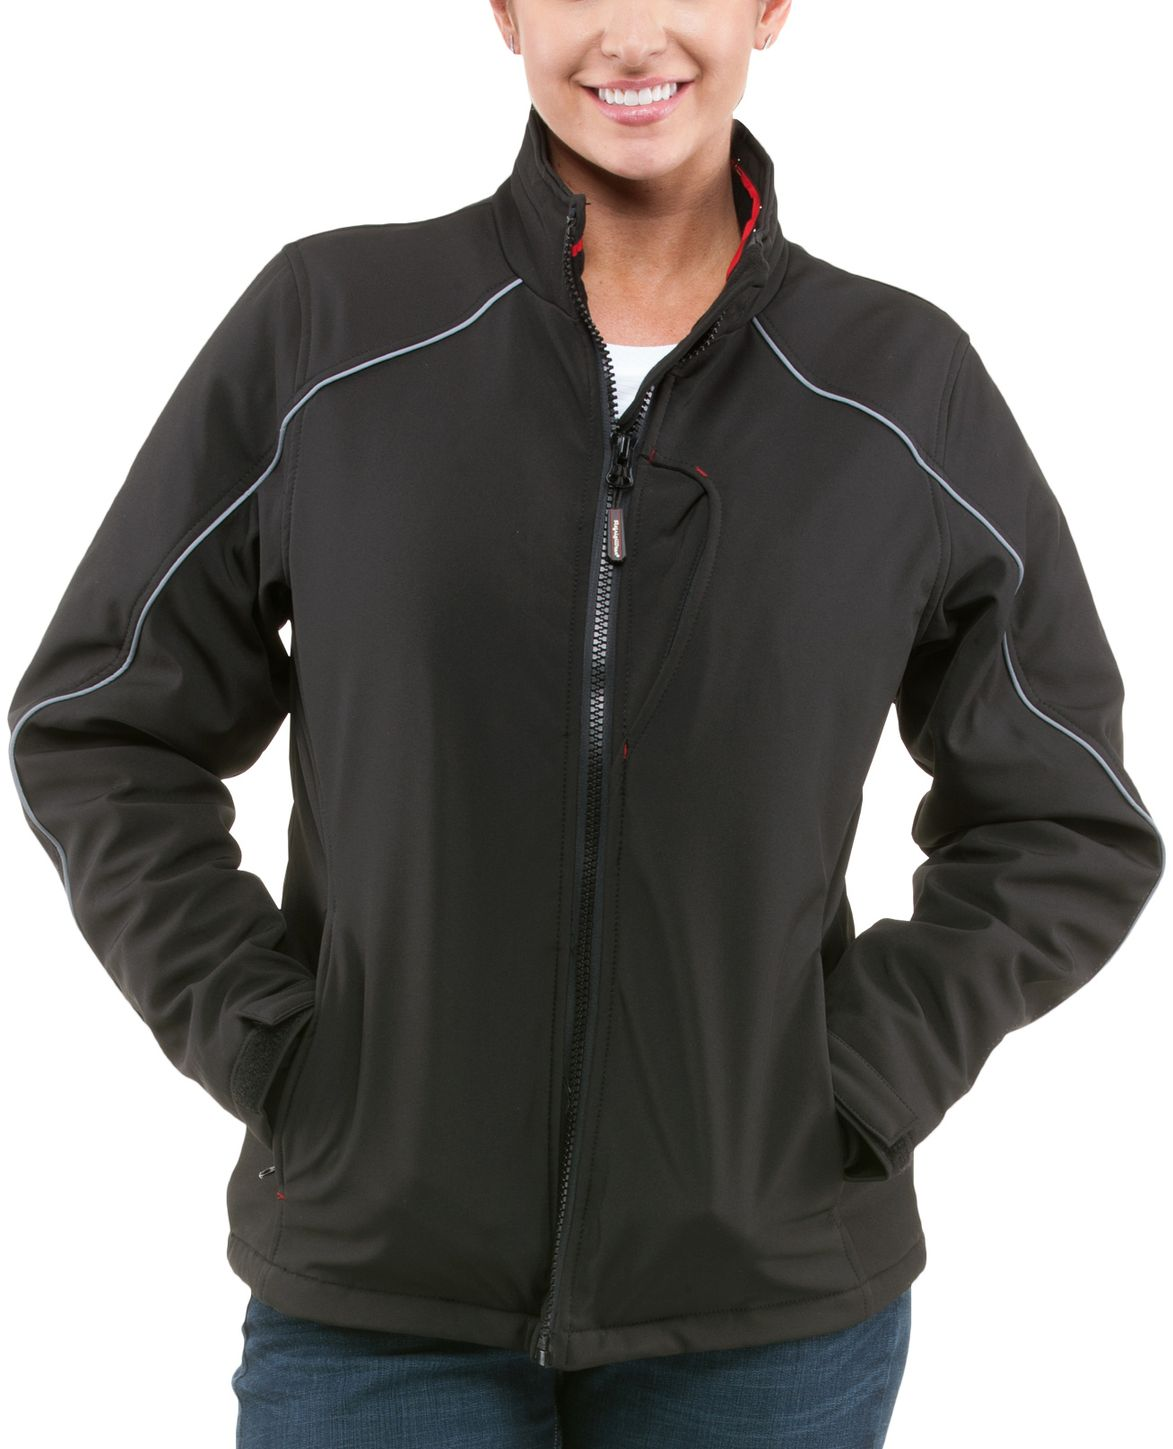 RefrigiWear 0493 Softshell Womens Winter Work Jacket Example Front